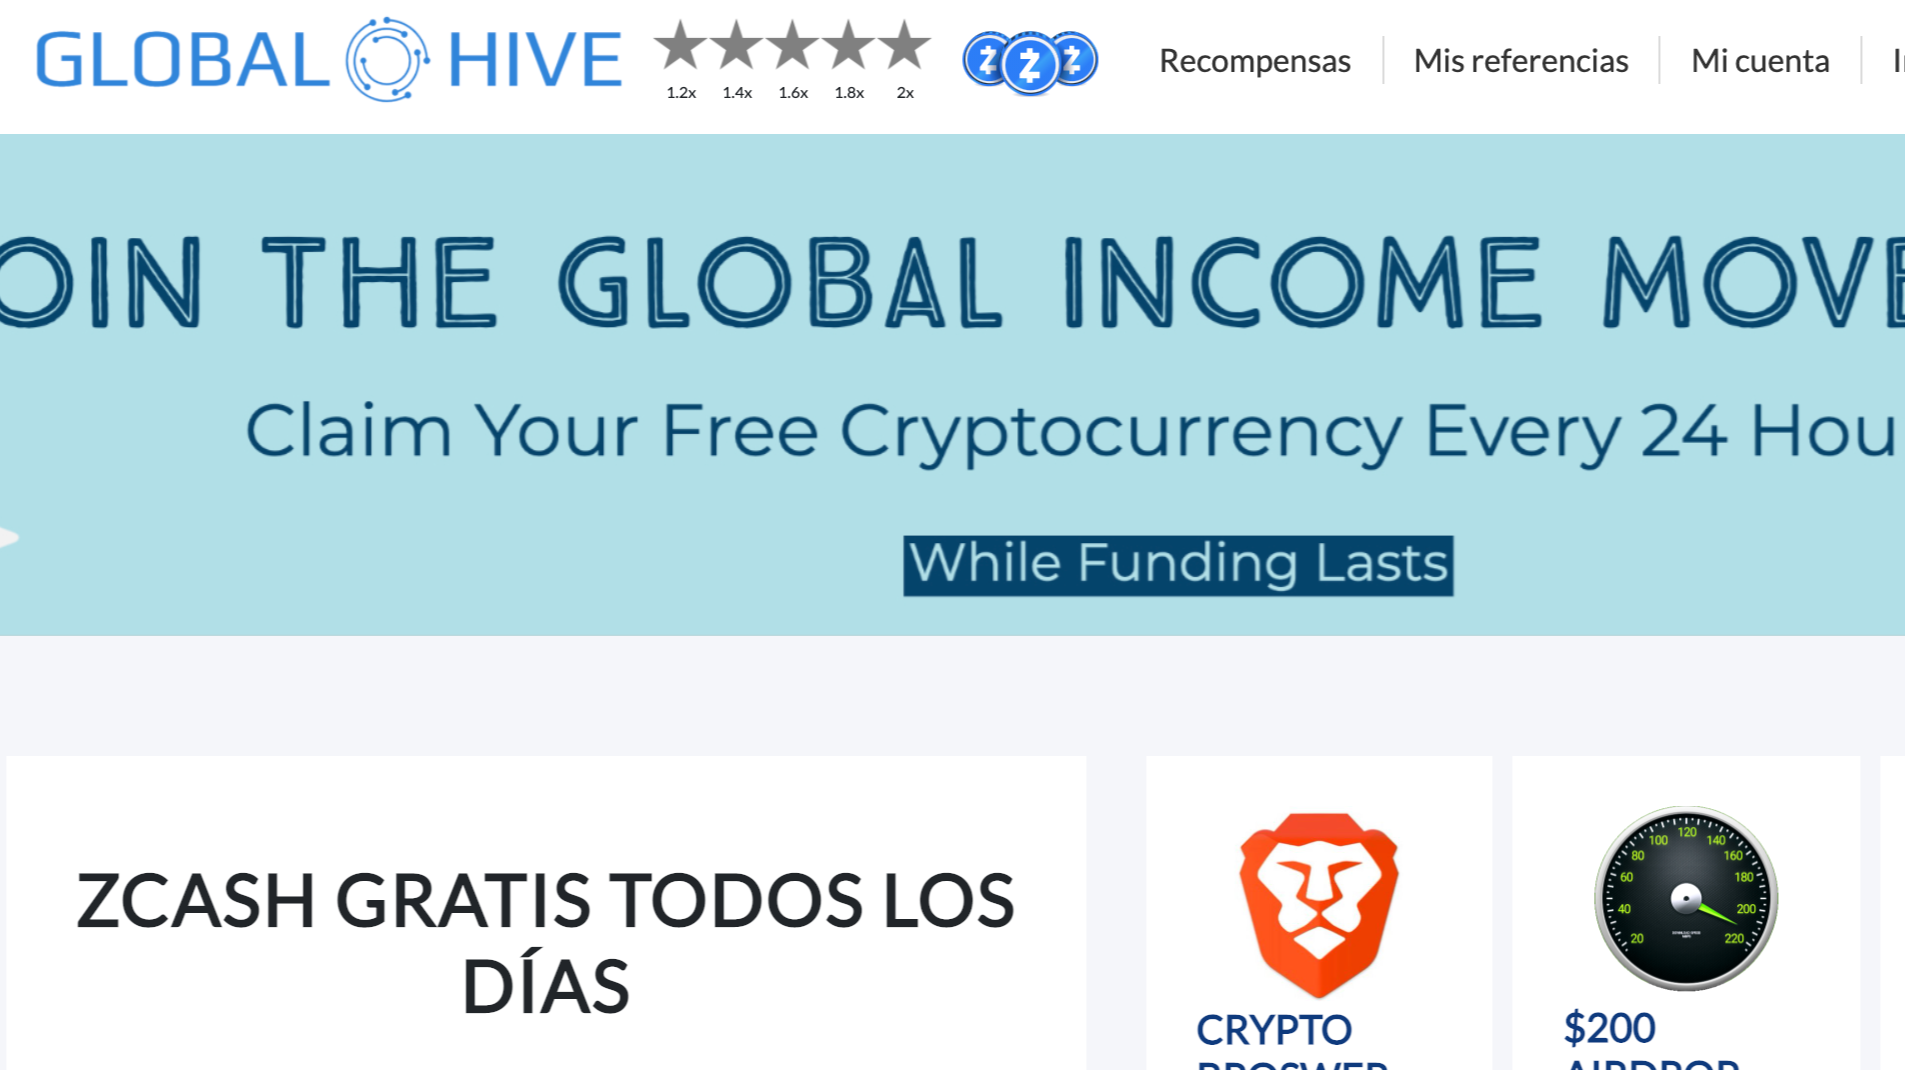 Globalhive: small tips every day in ZEC (zcash)